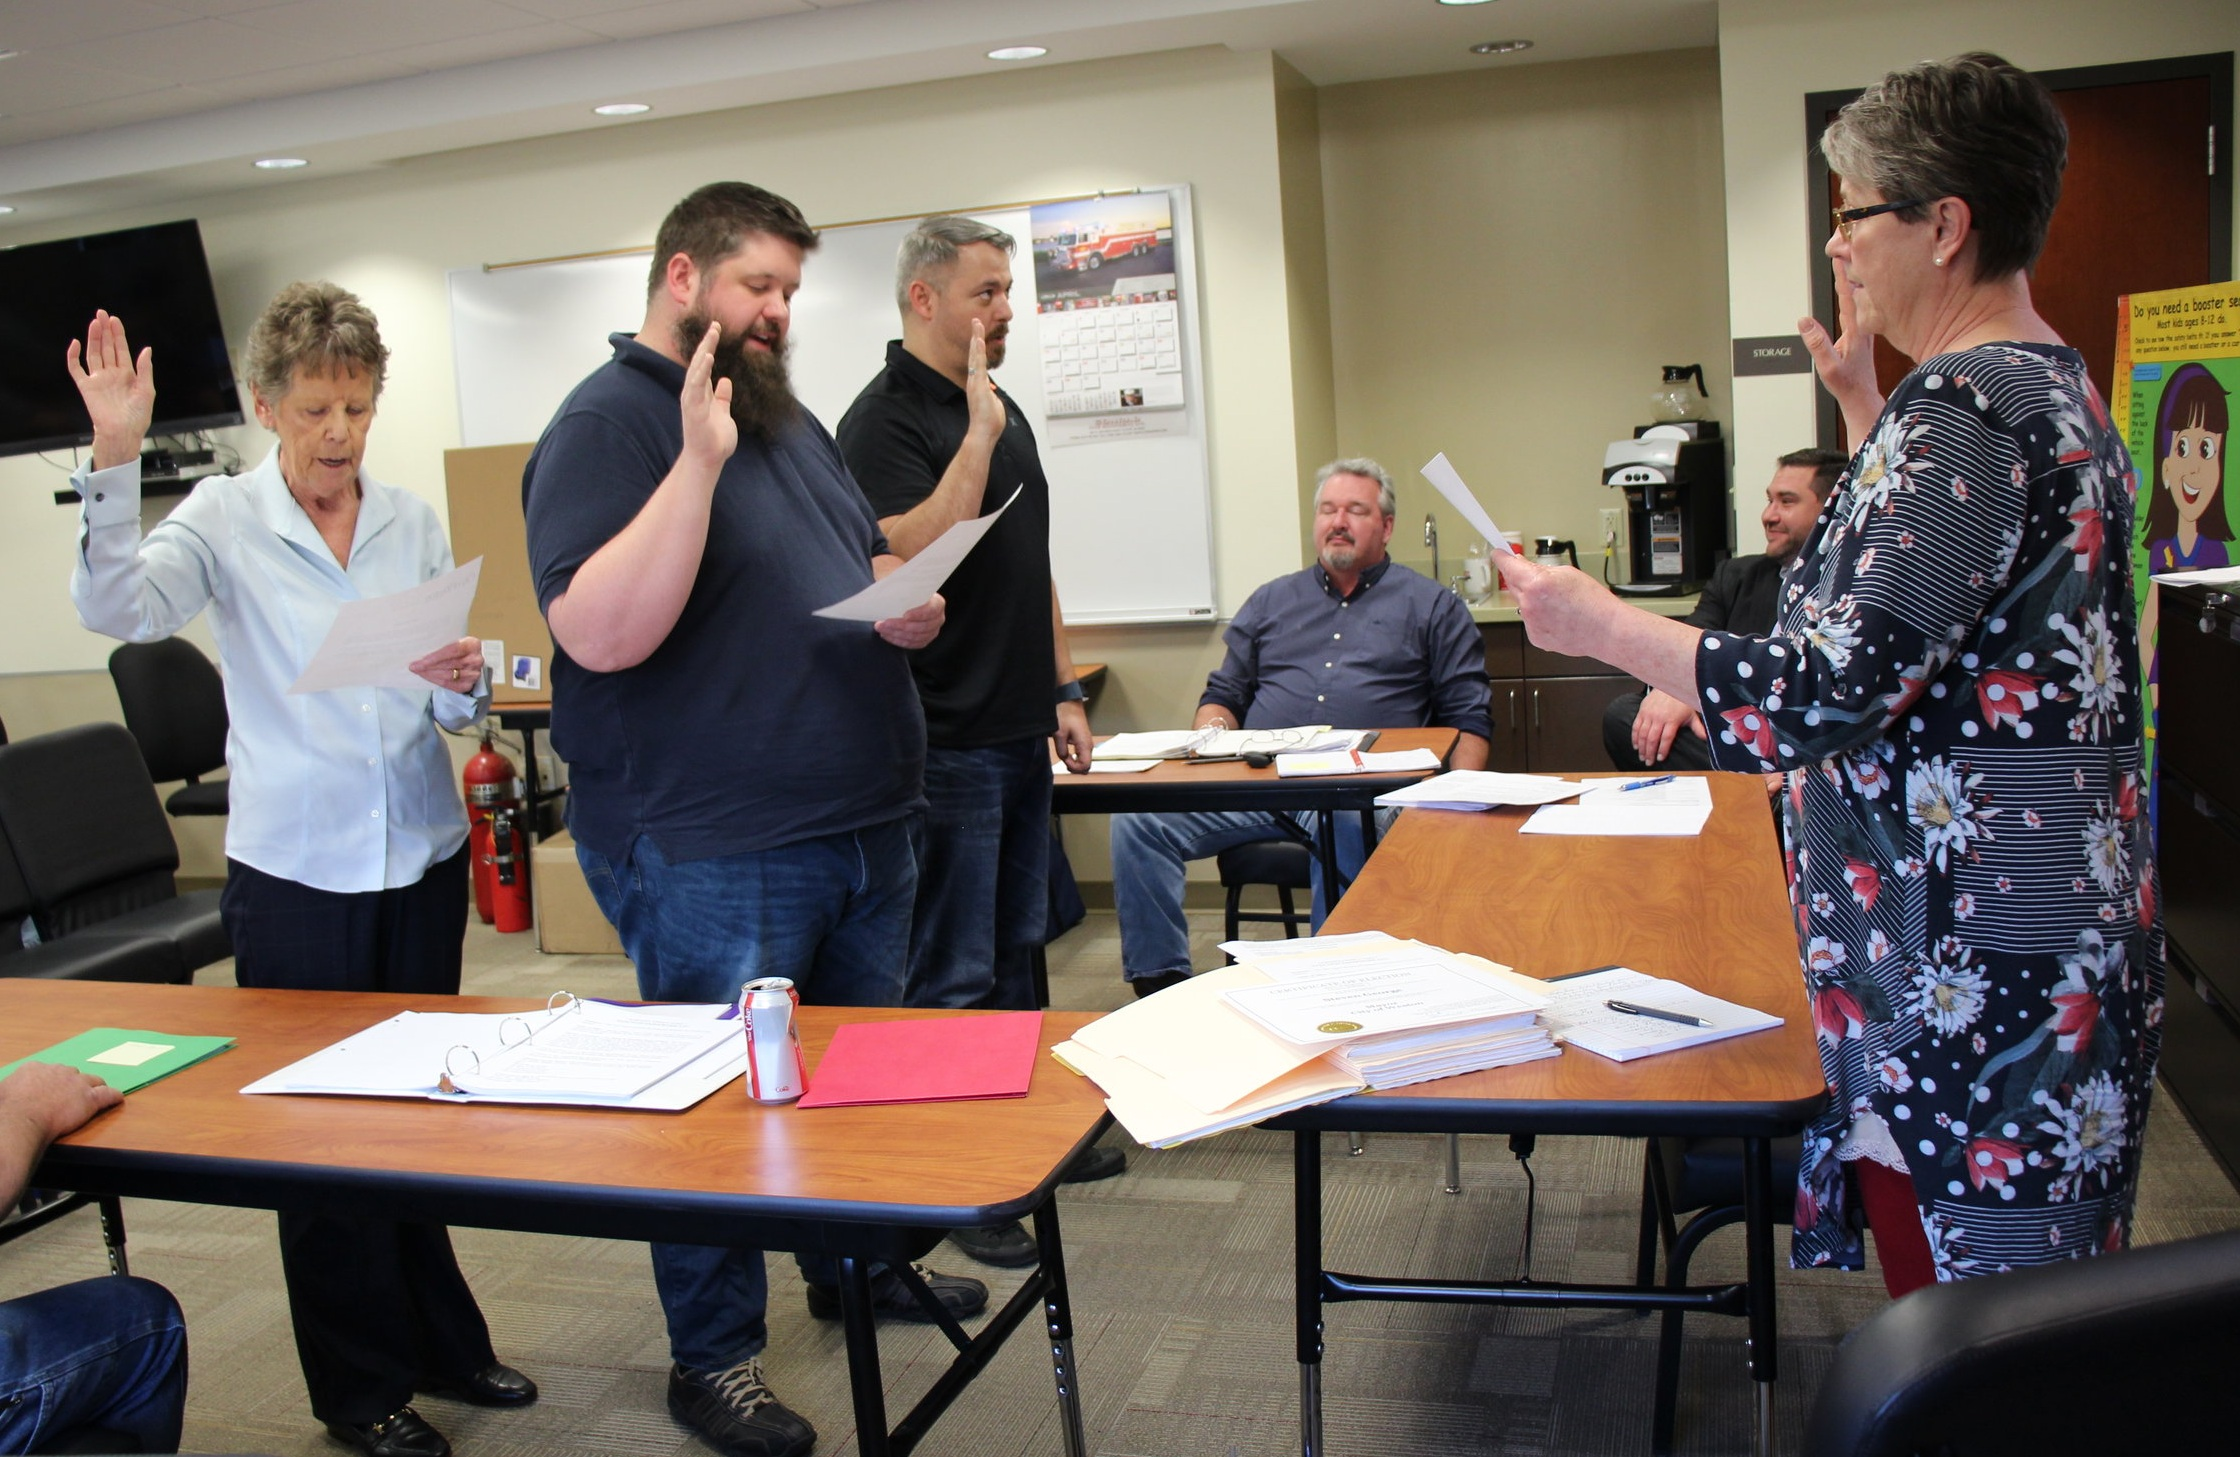 JEANETTE FAUBION/Citizen photo City clerk Kim Kirby swore in new mayor Steven George, new alderman Michael Goentzel and returning alderman Joyce Priddy at the Monday, April 8 board of aldermen meeting, held at the West Platte Fire Station due to flooding last month around city hall. Priddy was elected president of the board.